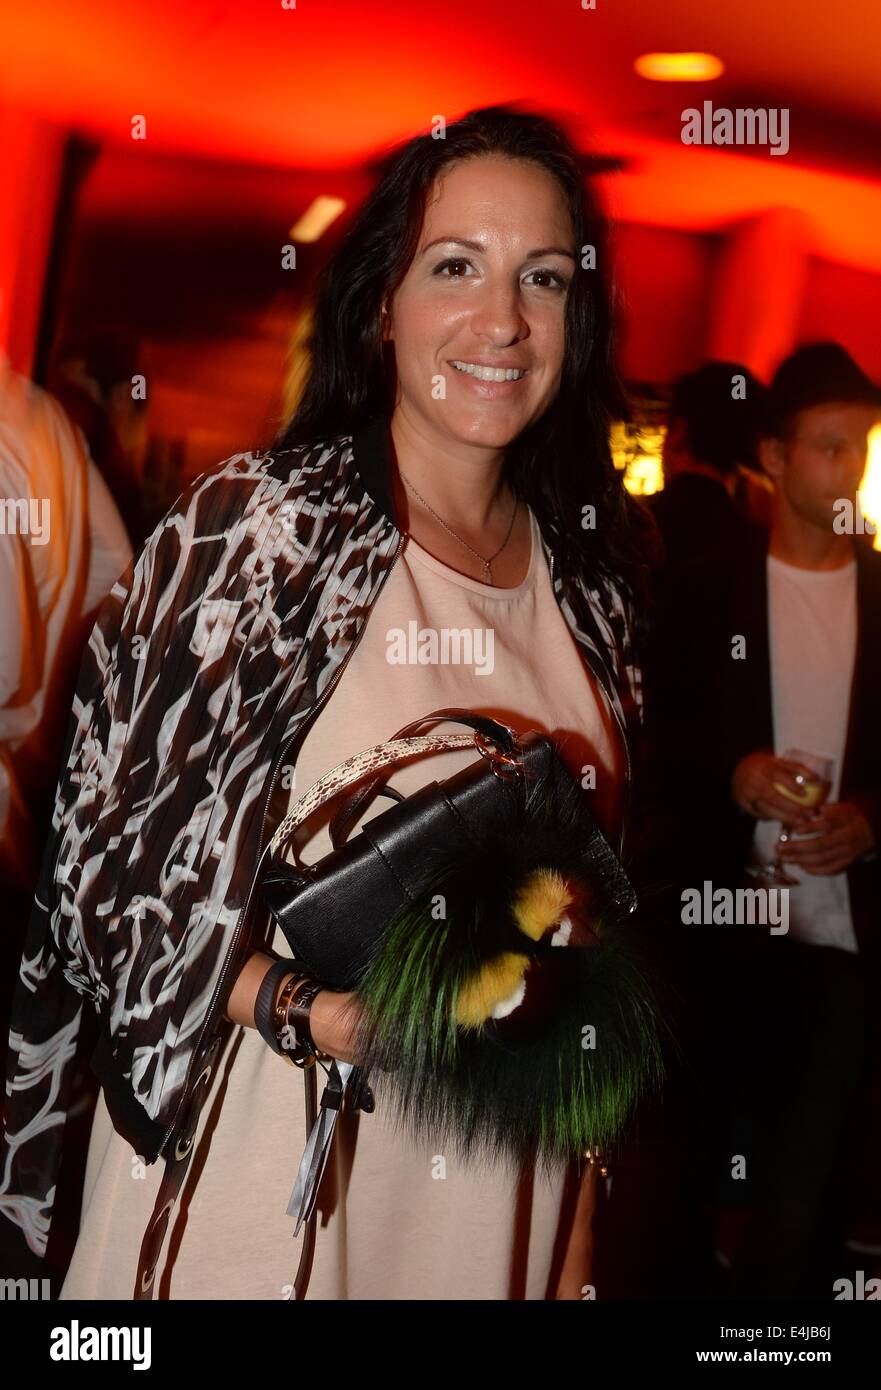 Berlin, Germany. 11th July, 2014. Movie producer Minu Barati-Fischer at the Michalsky Stylenite party during the - Stock Image